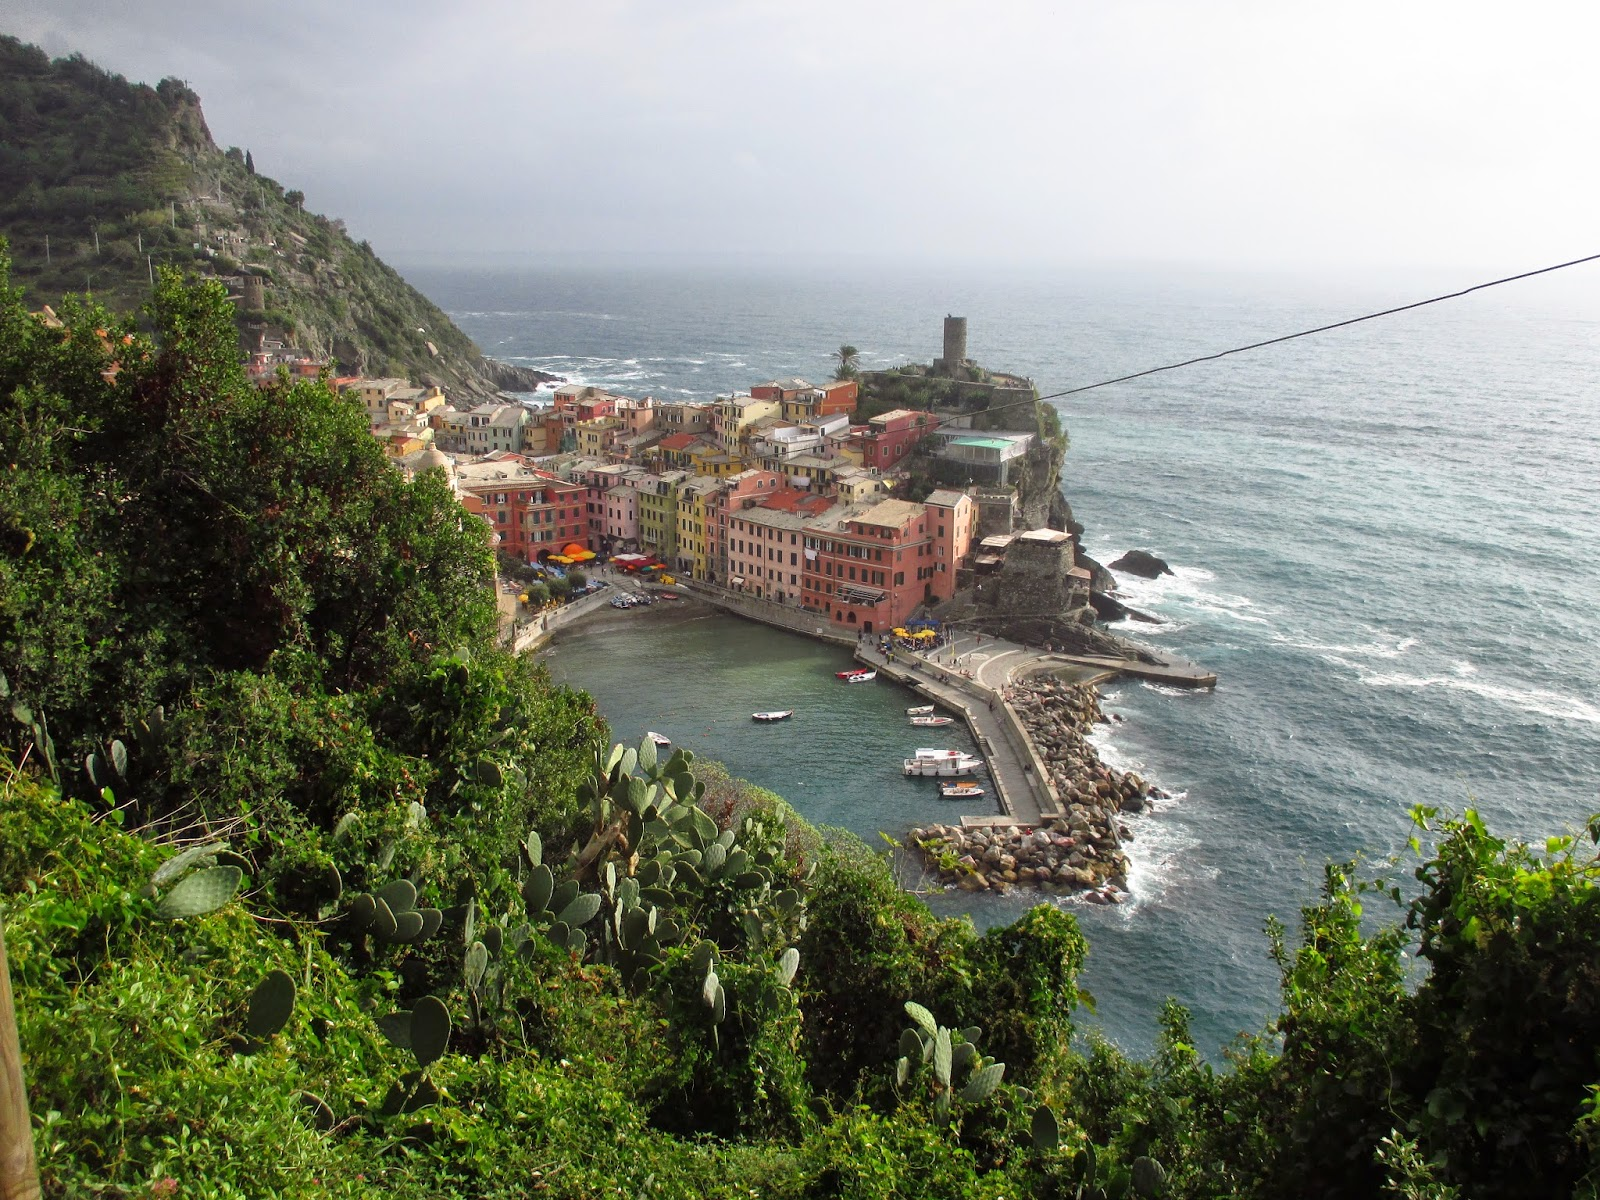 Vernazza Italian seaside town